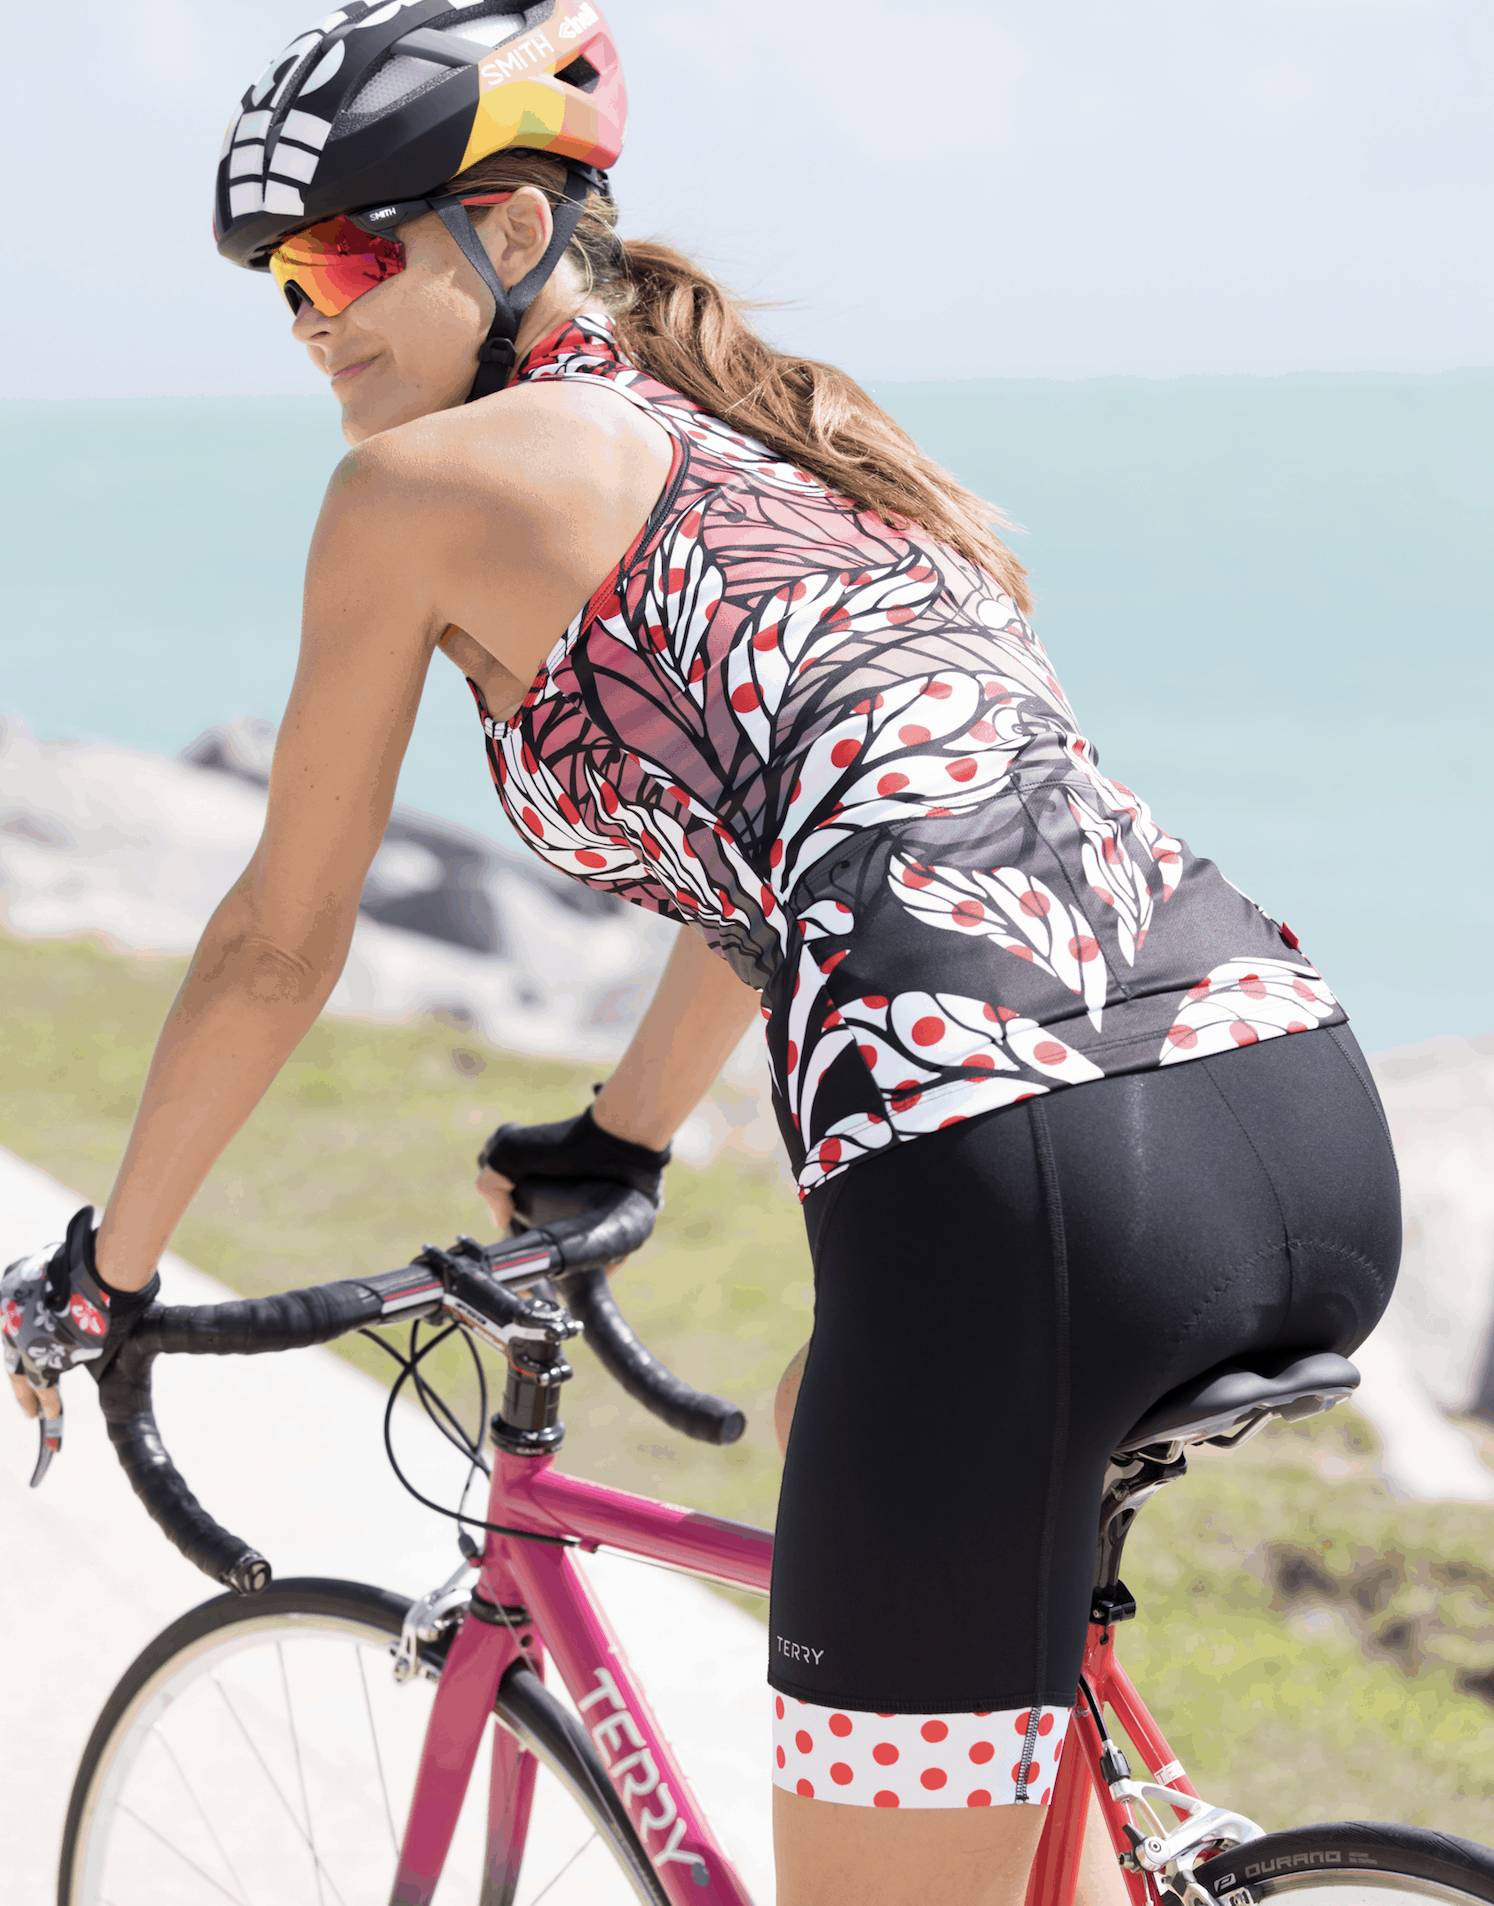 cycling comfort tips for women - riding tips and comfortable cycling clothing